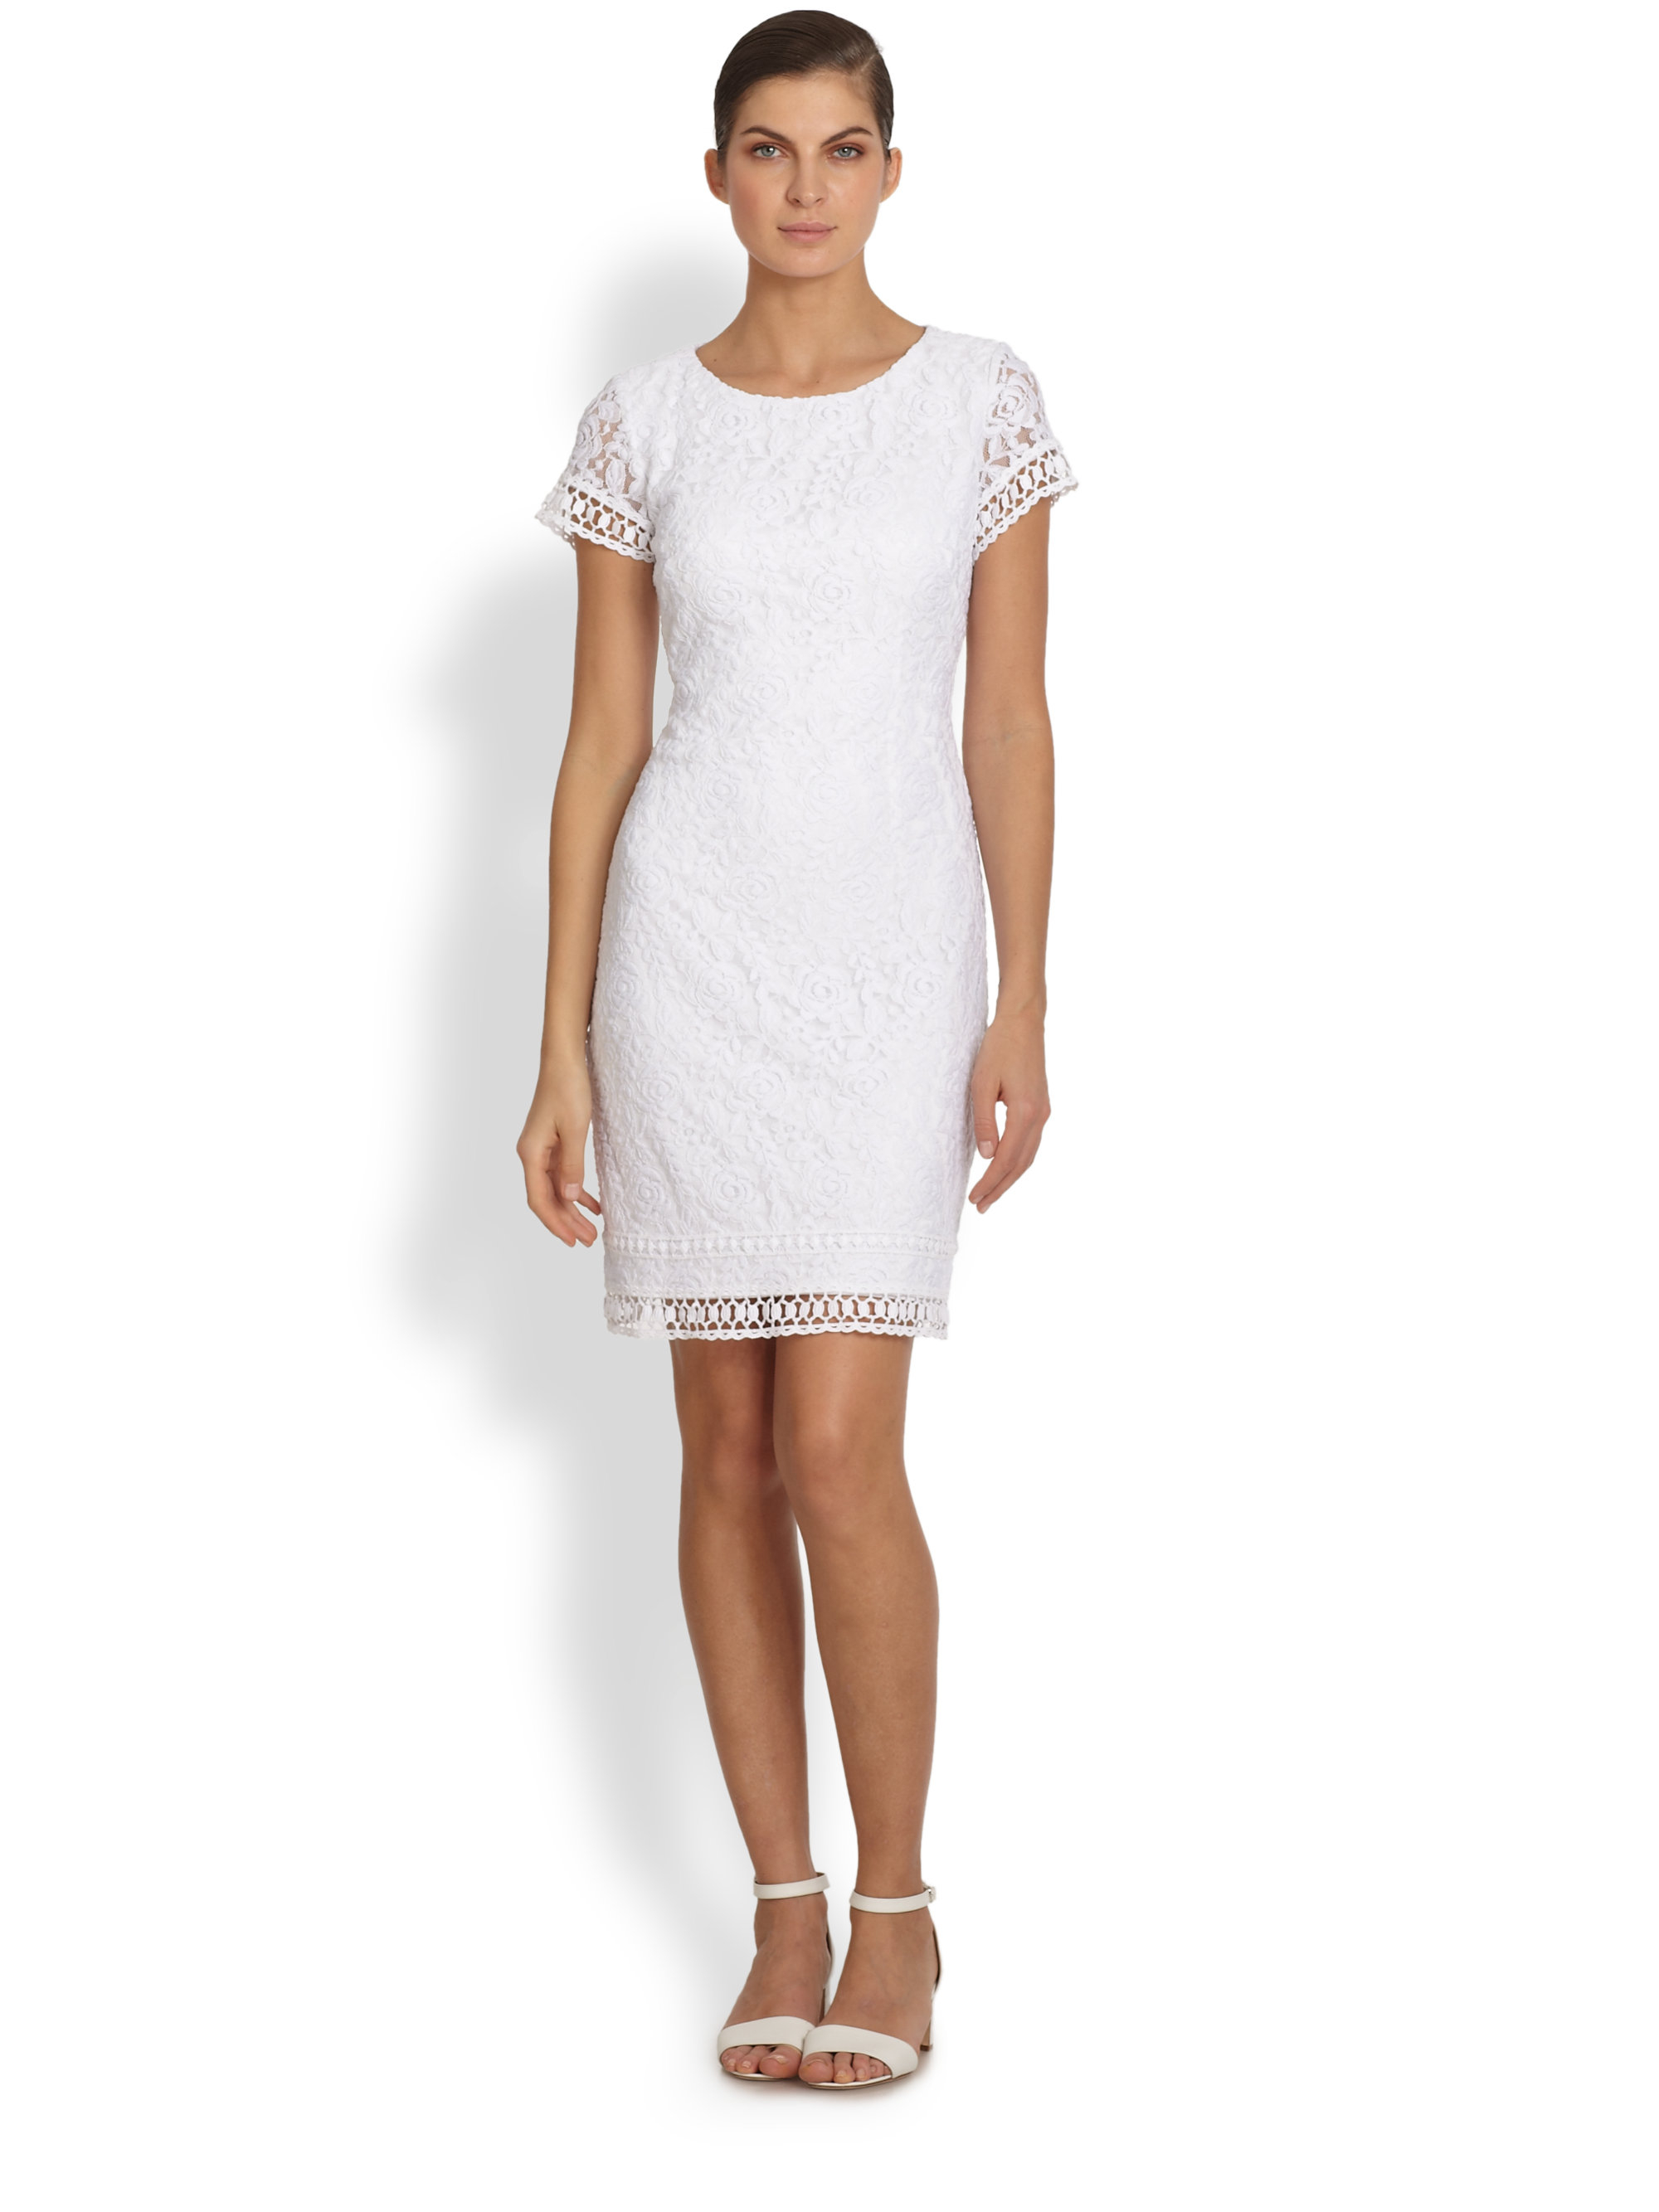 4805716c01ef Gallery. Previously sold at: Saks Fifth Avenue · Women's White Cocktail  Dresses